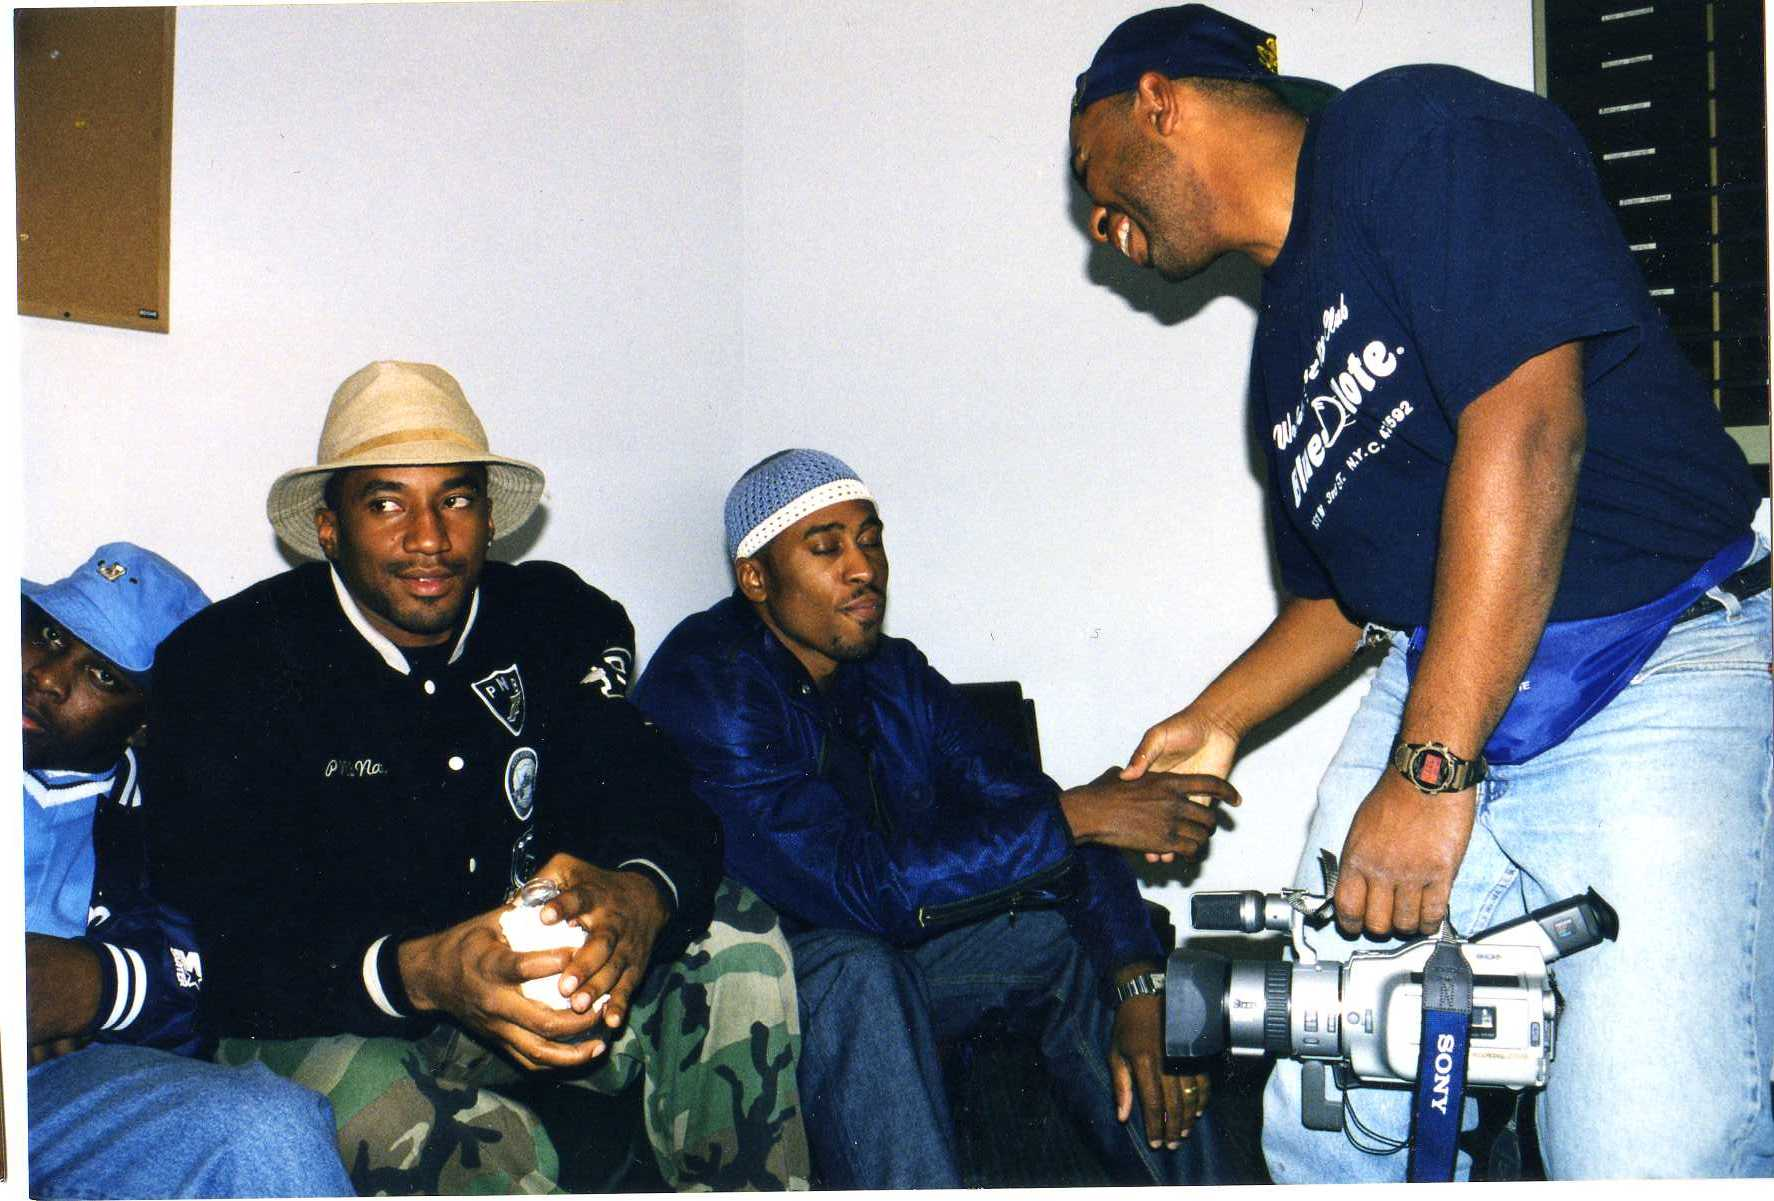 me and a tribe called quest